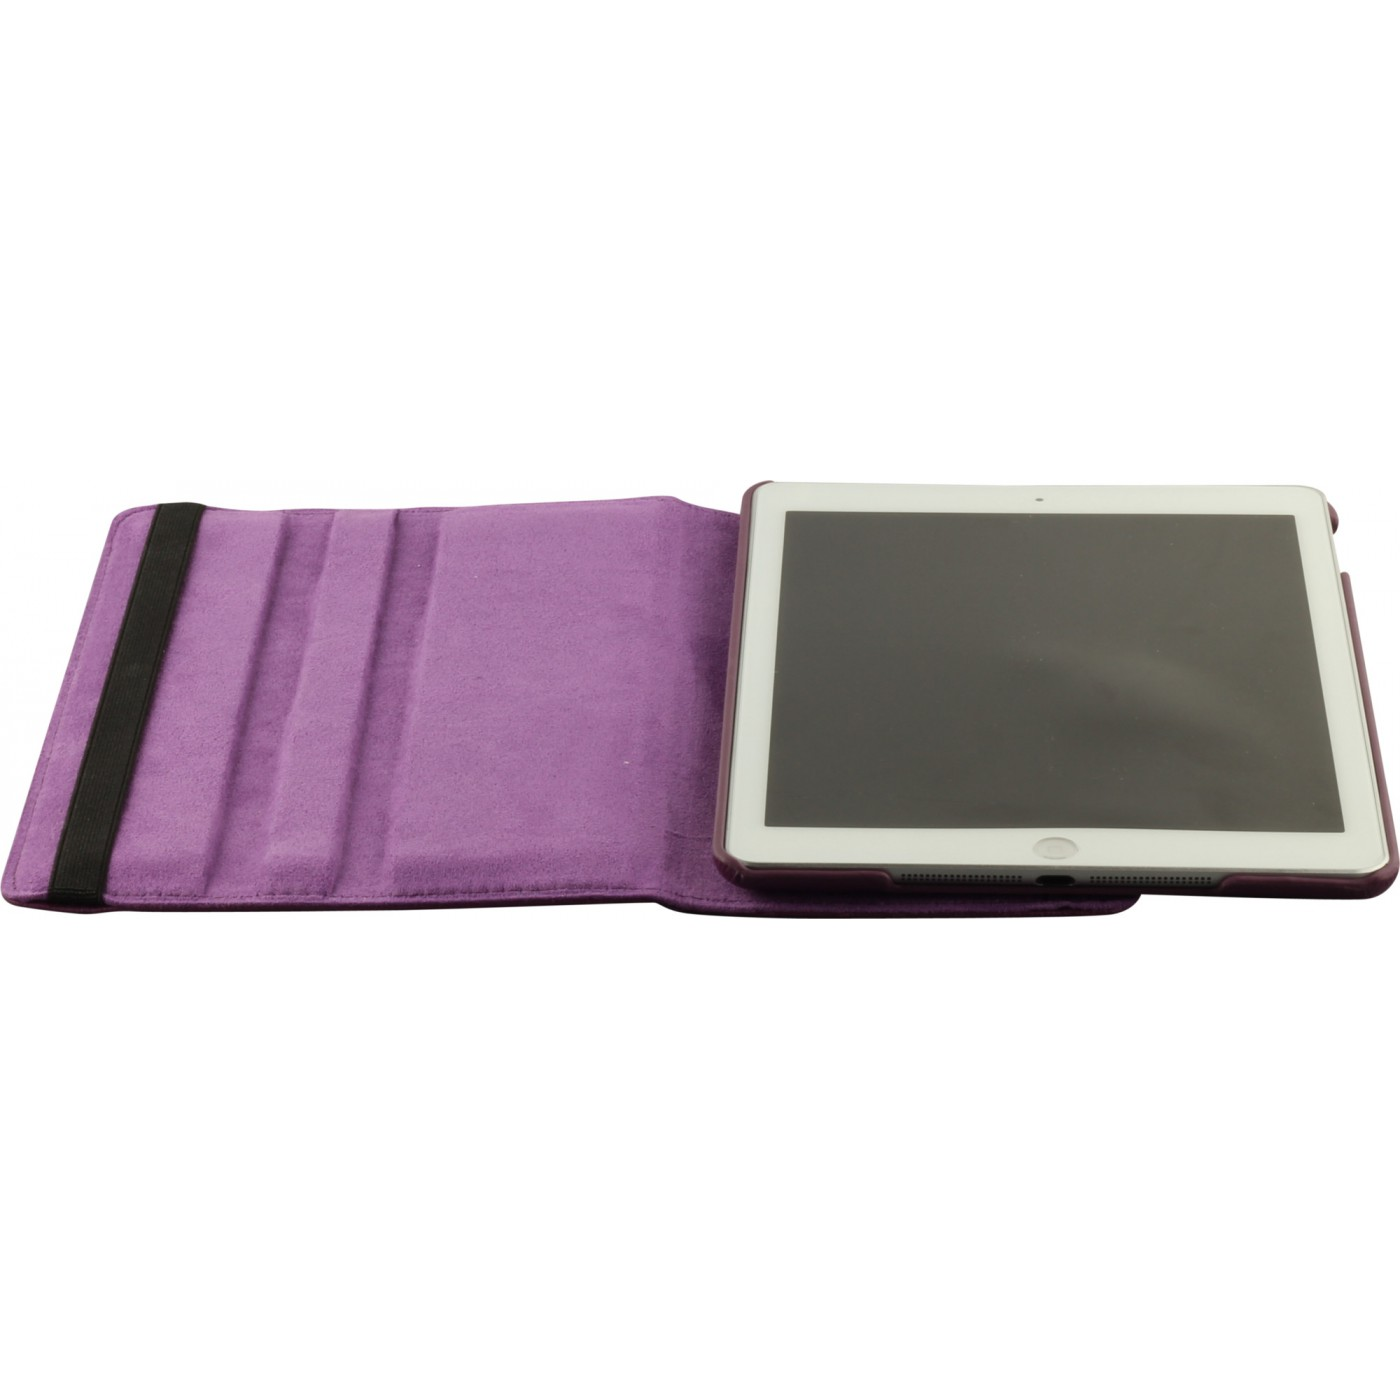 etui cuir ipad mini 4 premium flip 360 violet. Black Bedroom Furniture Sets. Home Design Ideas